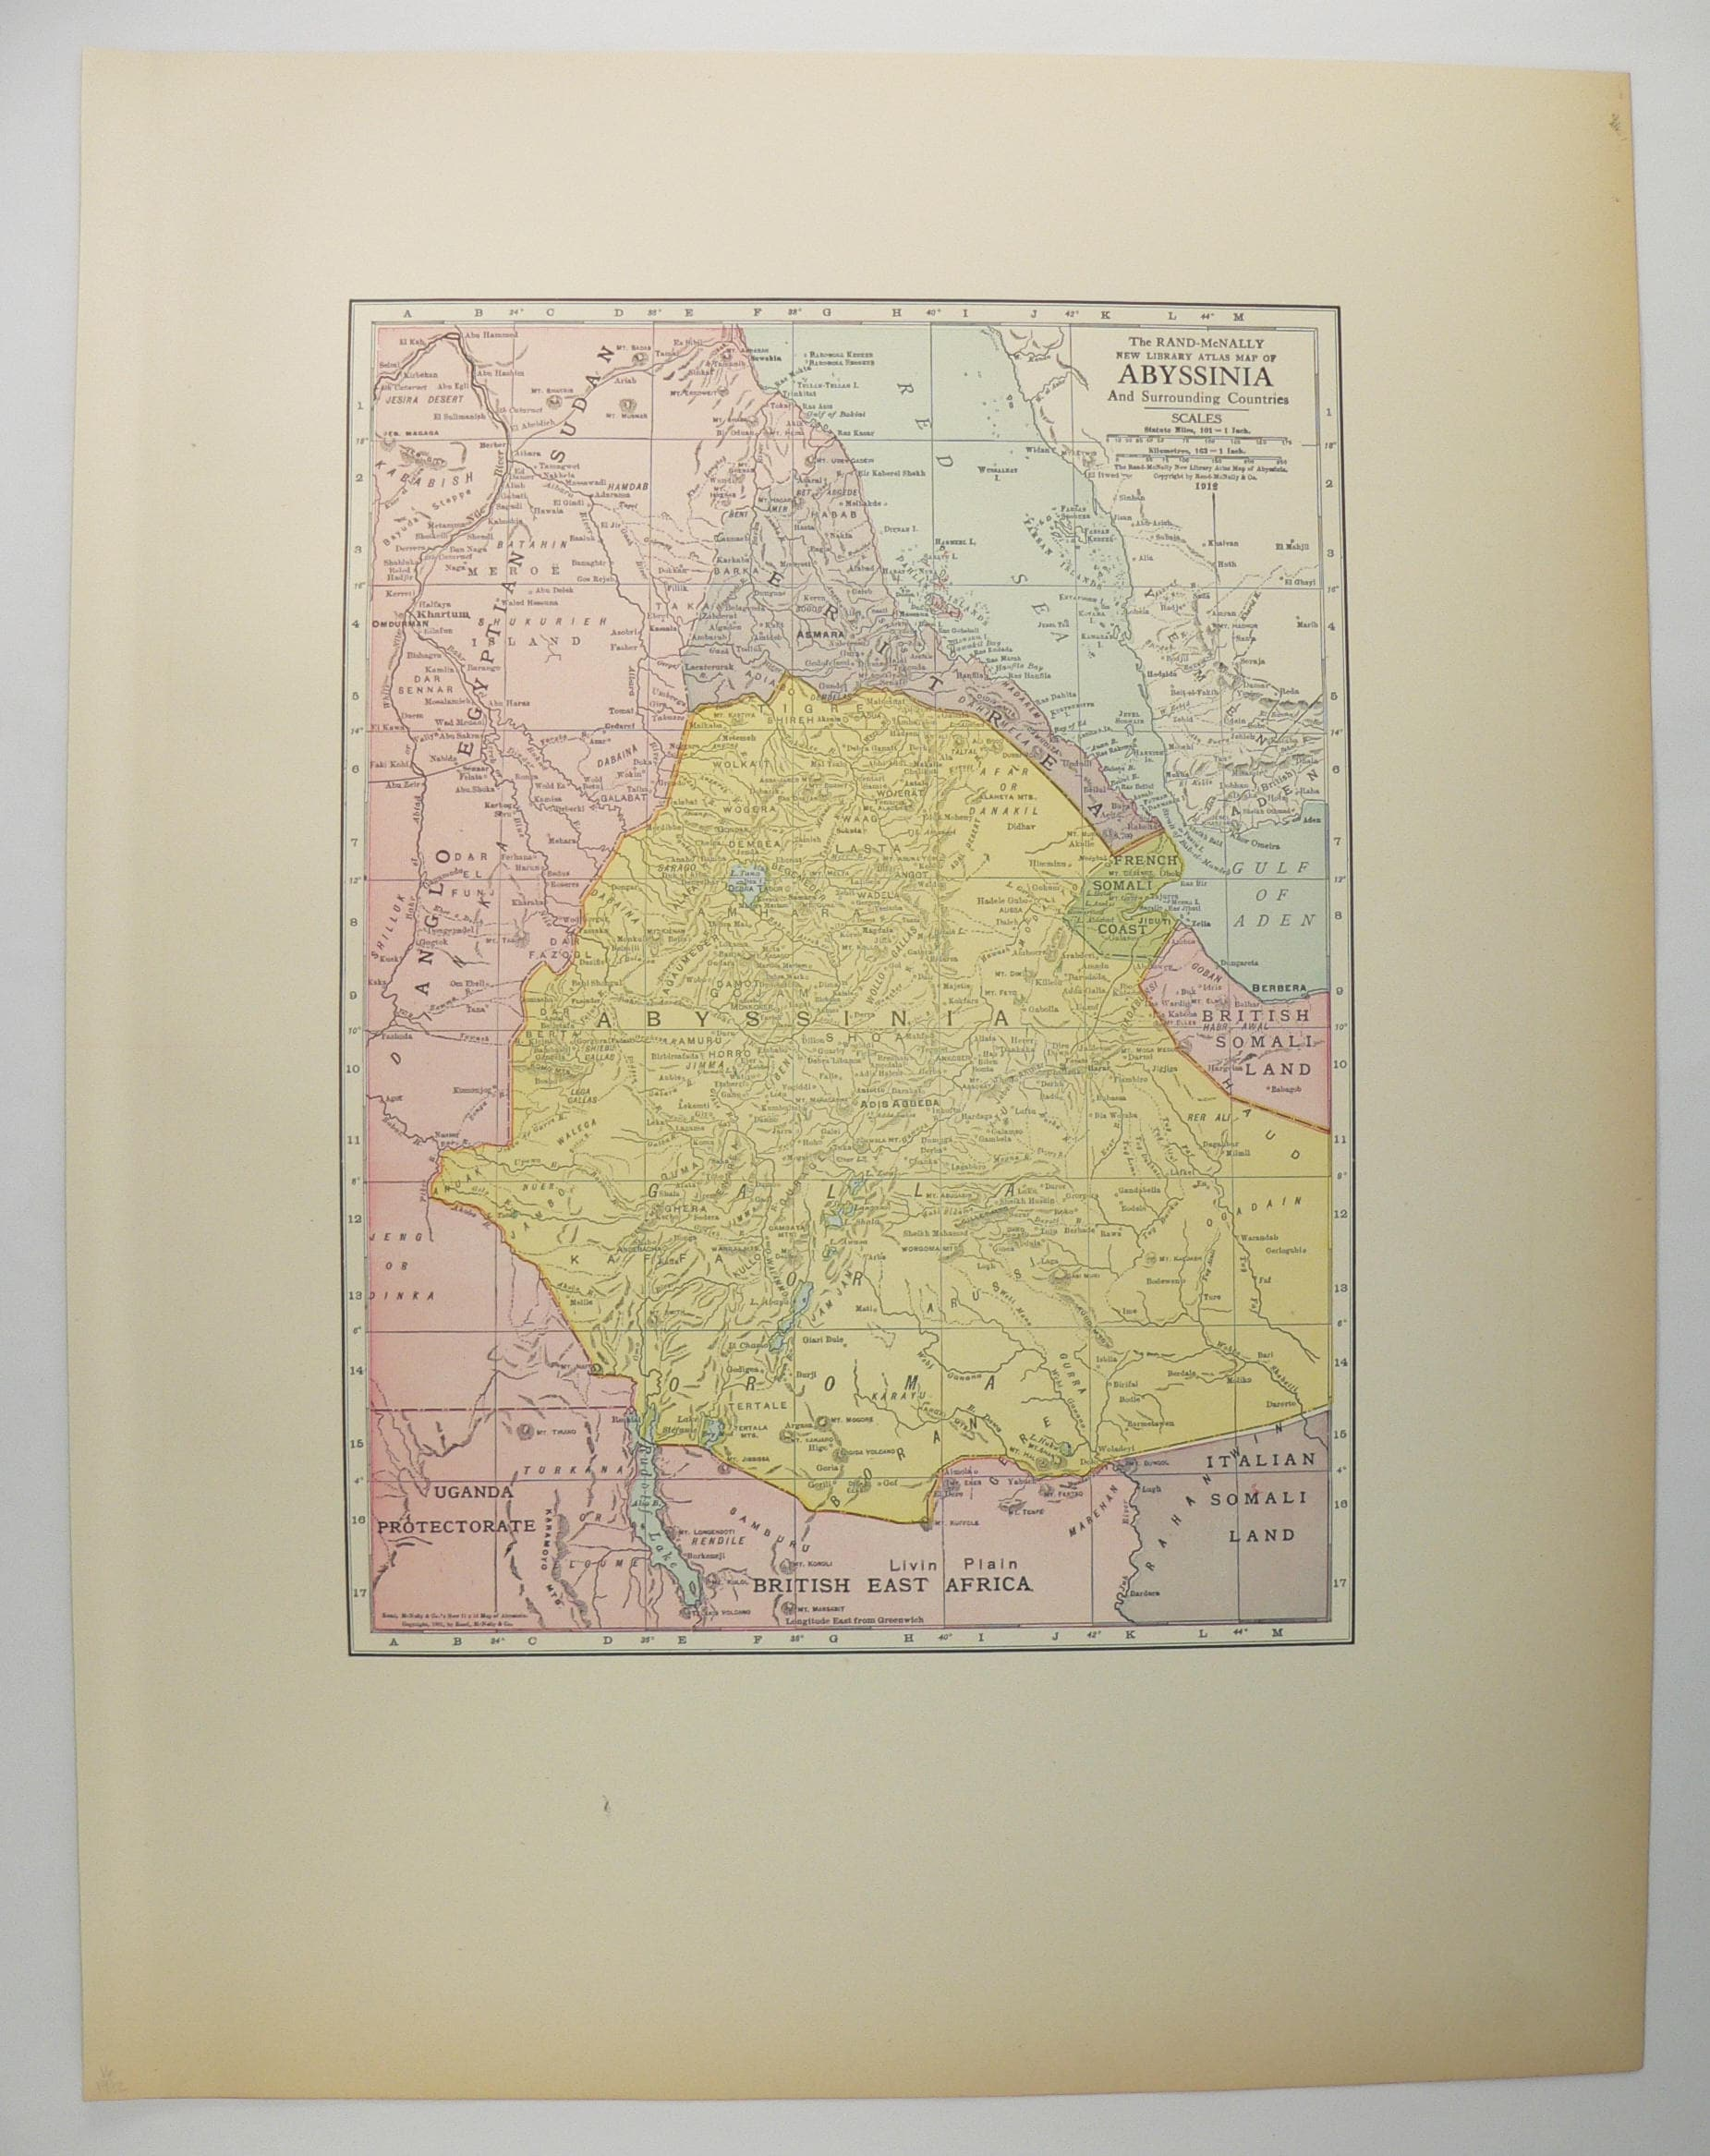 1912 Map of Abyssinia, Ethiopia, Somalia and Sudan Africa, Original Vintage  Map by Rand McNally